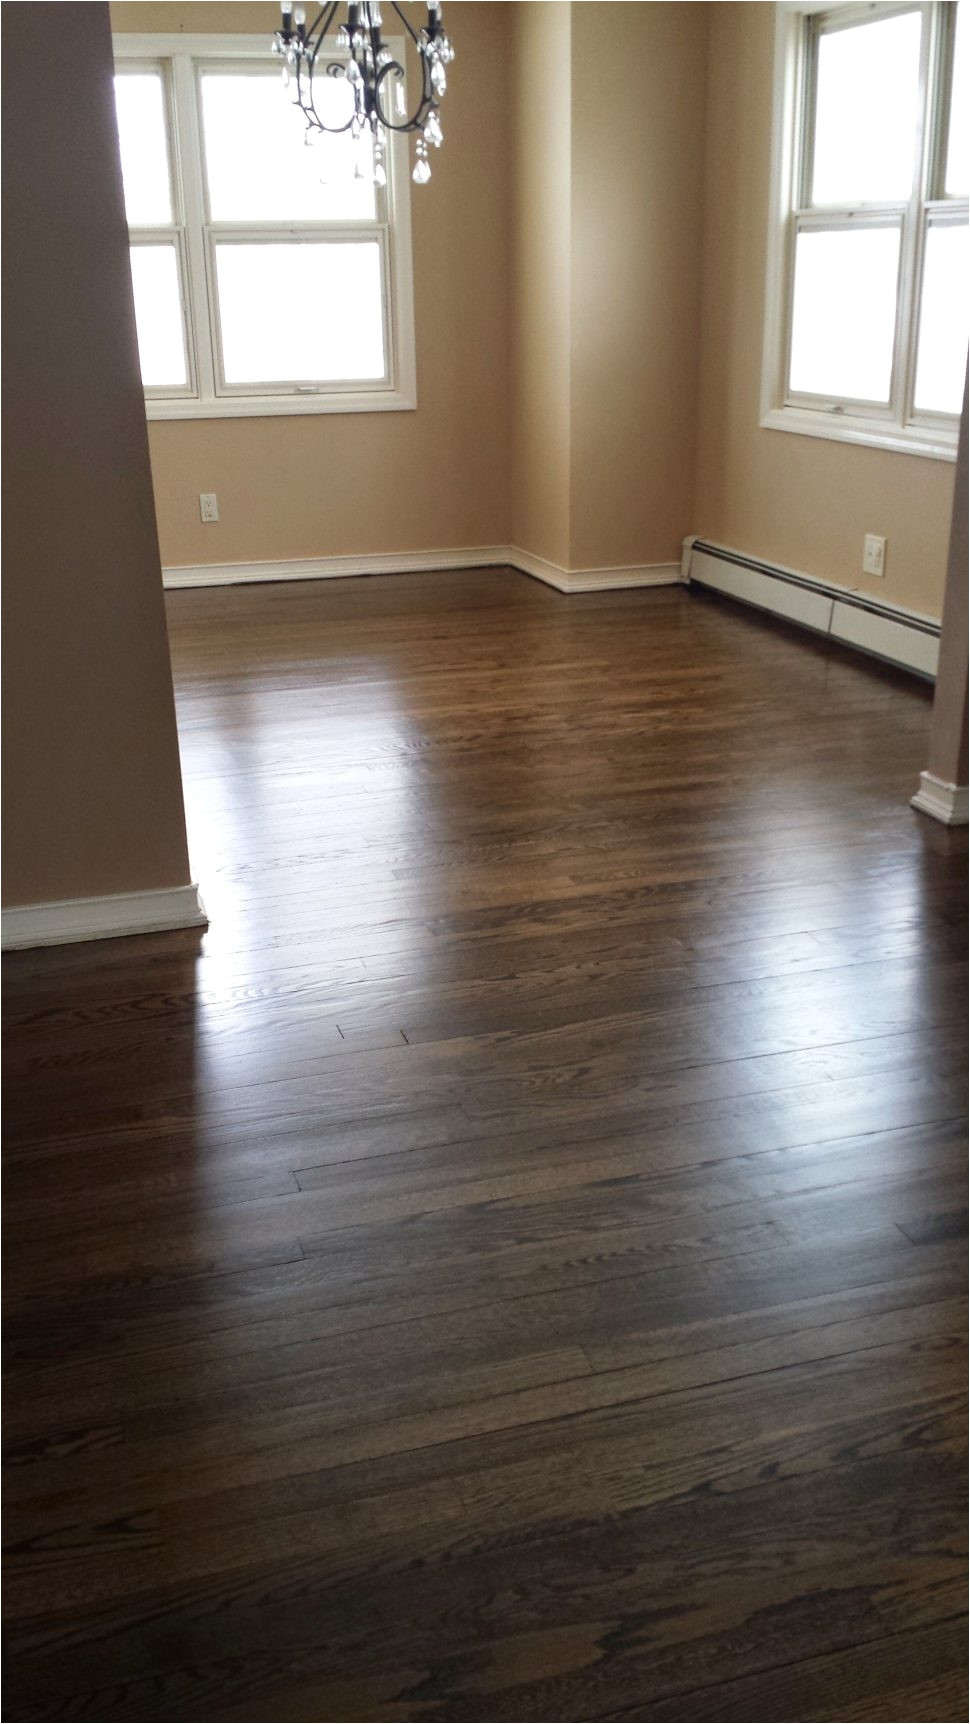 engineered vs solid hardwood flooring of using solid wood flooring on walls amusing refinishingod floors diy regarding using solid wood flooring on walls amusing refinishingod floors diy network refinish parquet without